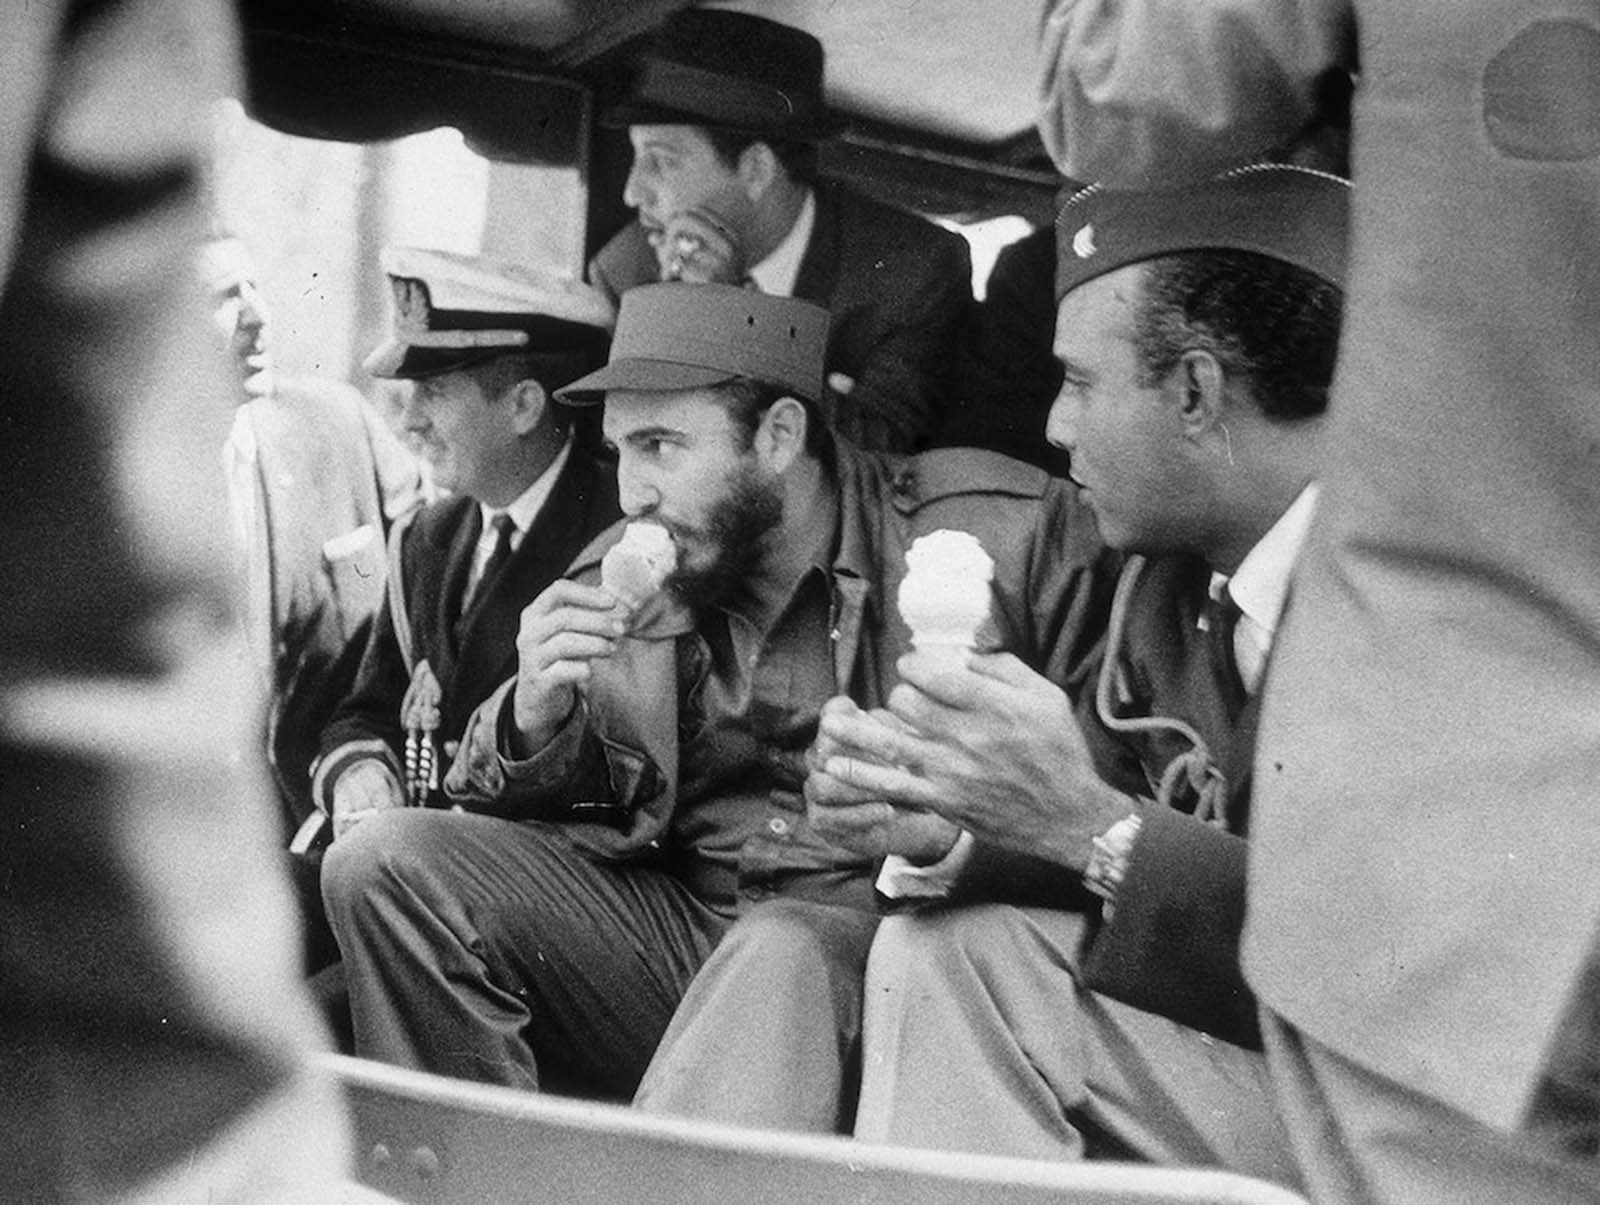 Castro eats an ice cream cone as he rides in the Bronx Zoo train, in New York City.